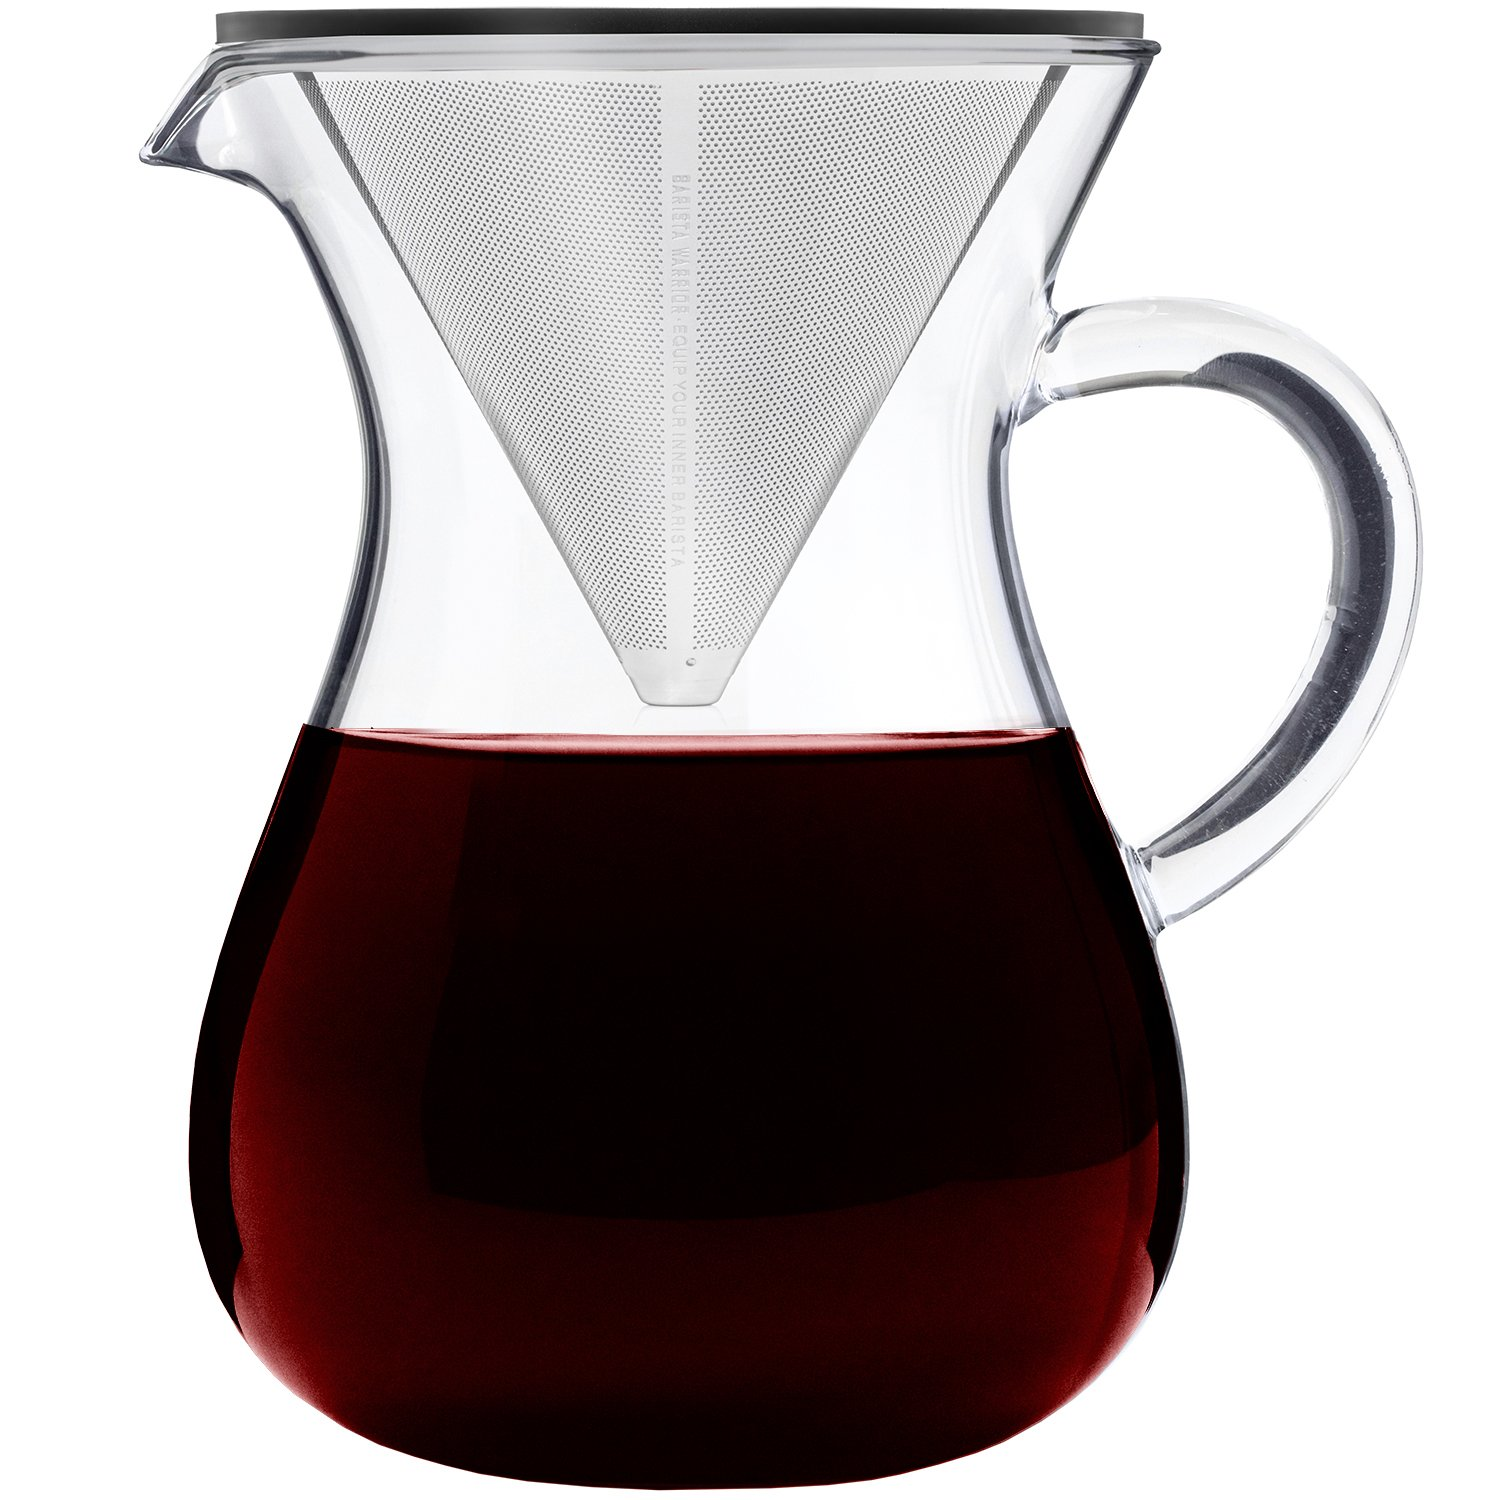 Pour Over Coffee Maker Set - Pour Over Kit Includes Large Glass Carafe and Reusable Dripper Coffee Filter - 5 Cup Coffee Brewer (27oz | 800ml)